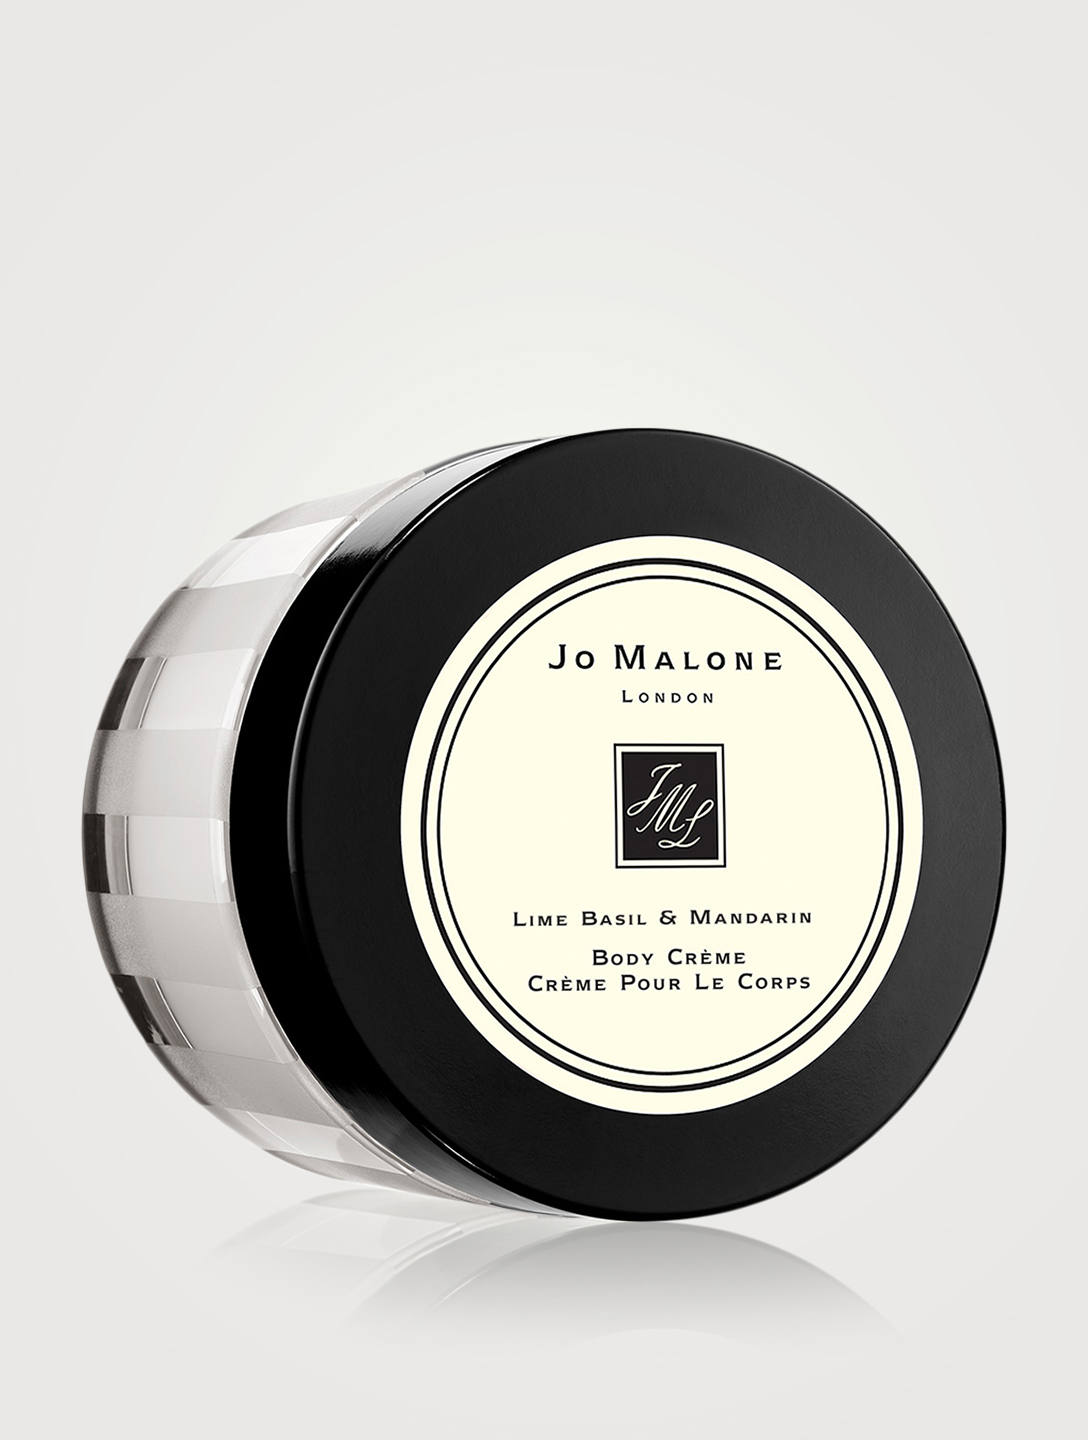 JO MALONE LONDON Lime Basil & Mandarin Body Crème Beauty